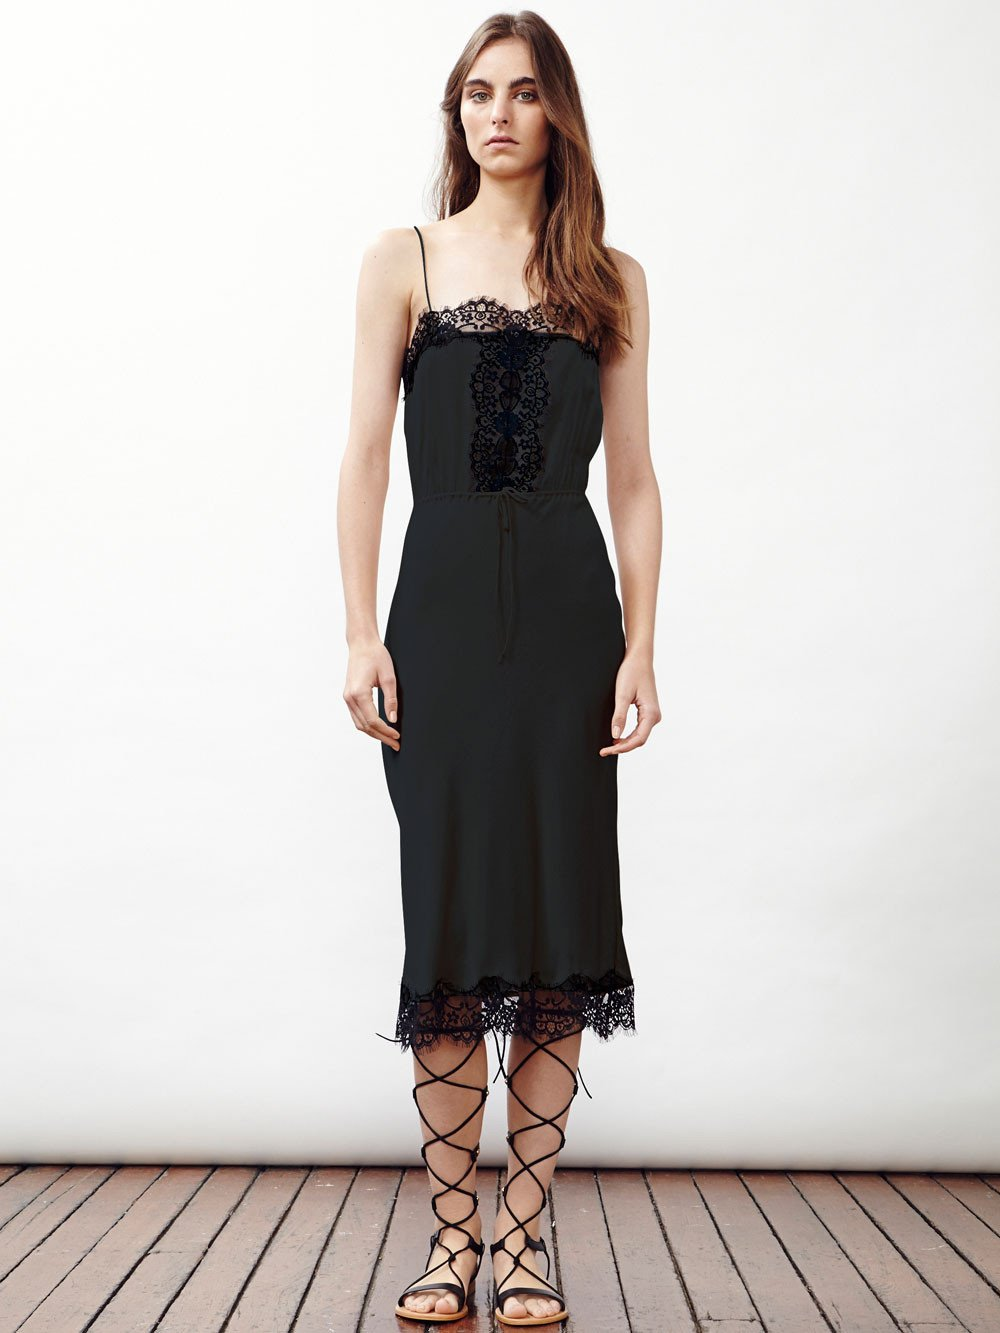 THE SEEKER Silk Slip Dress with Detail by Little Joe Woman